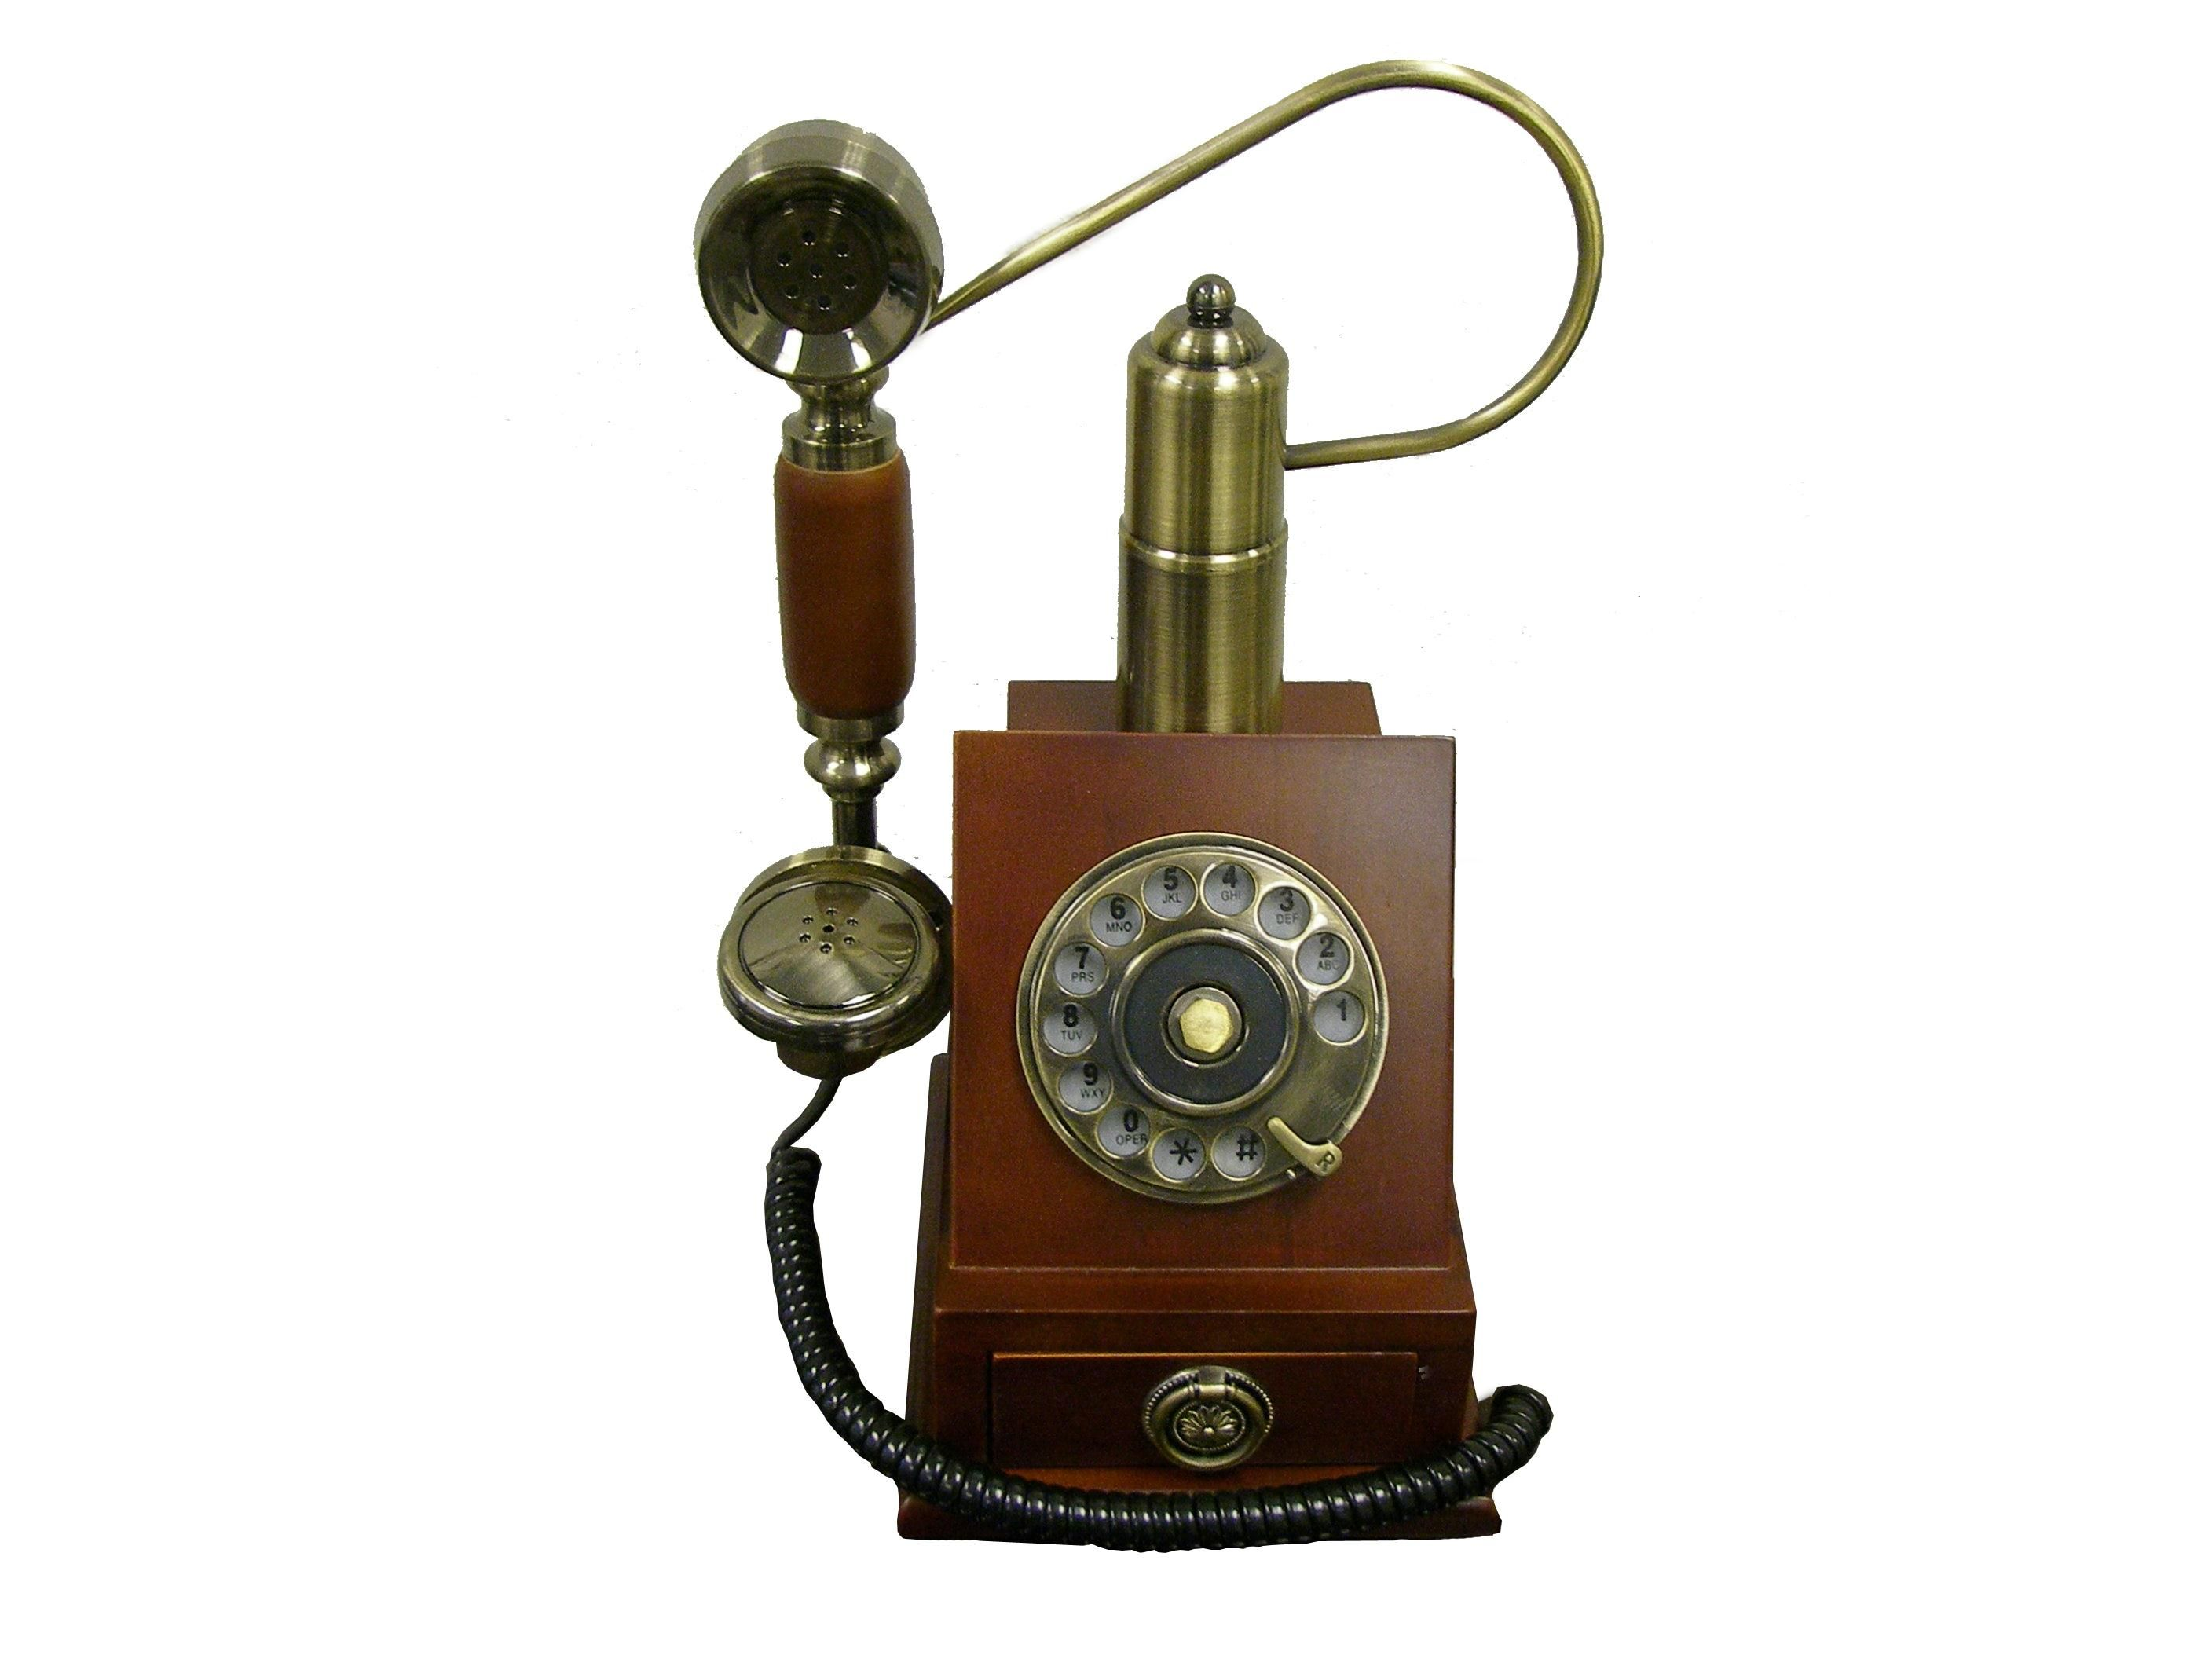 vintage telephone | ORE Old Fashioned Telephone T0635 - $140.04 ...